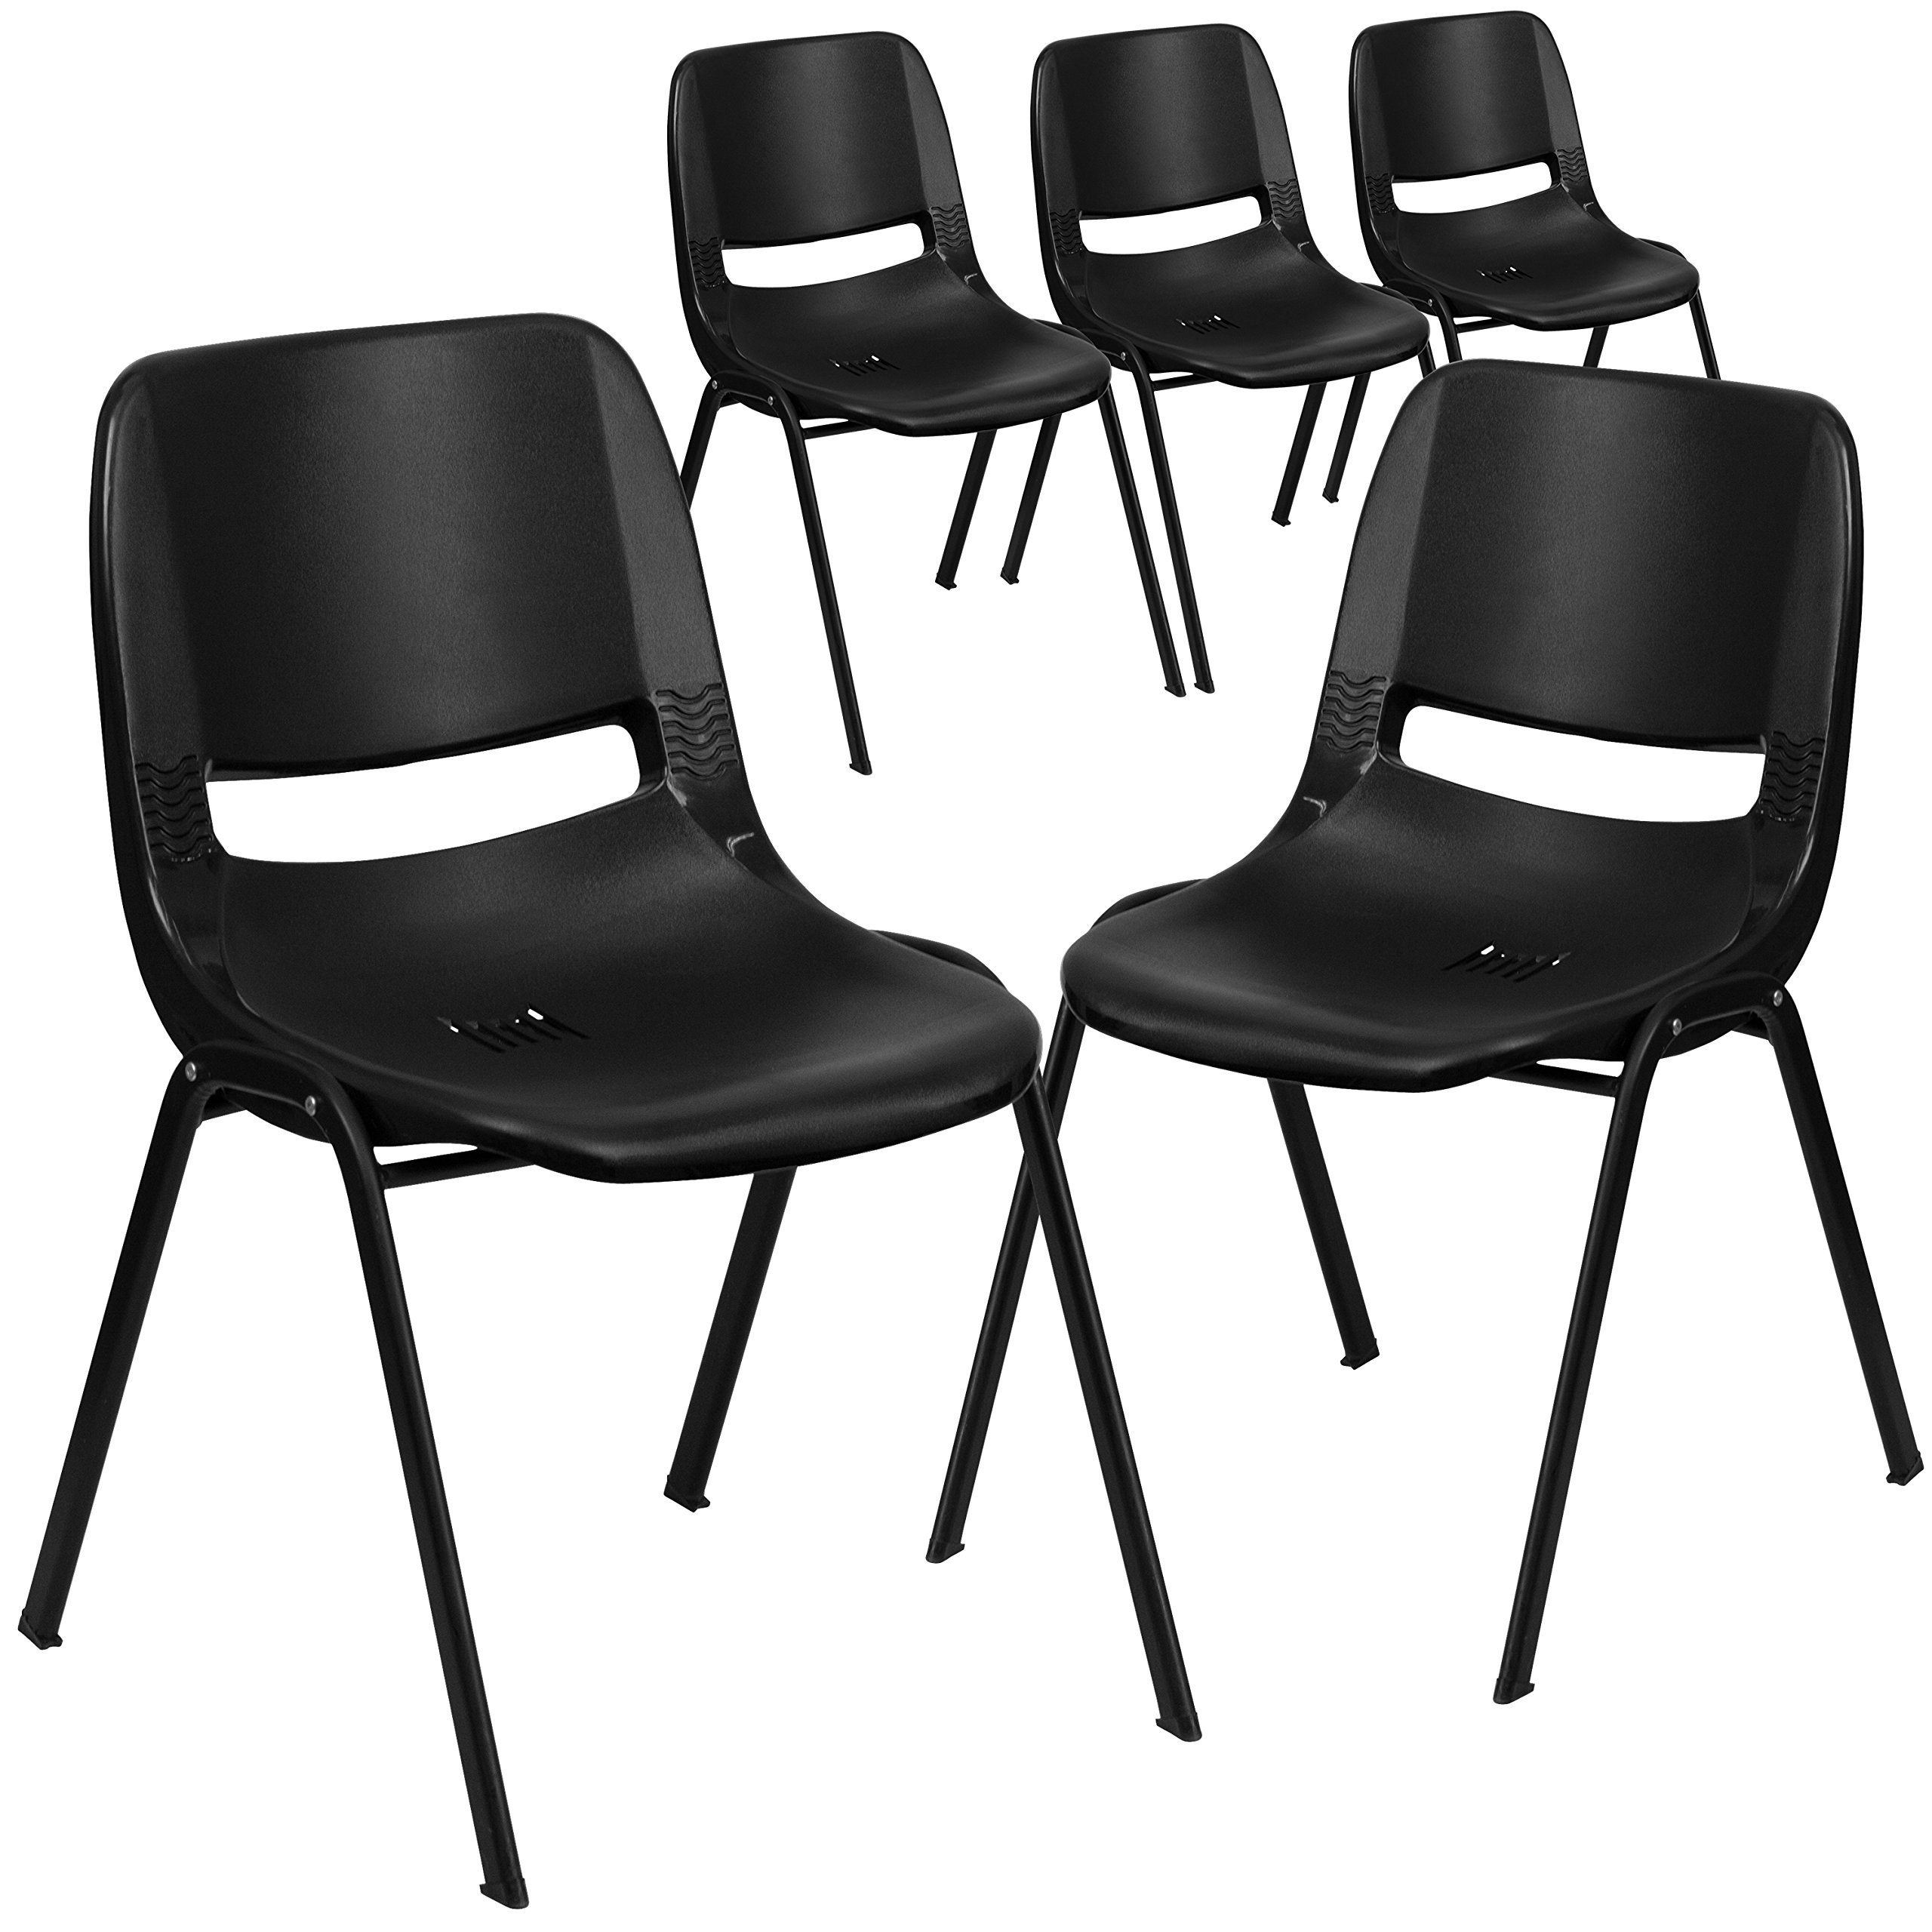 Flash Furniture 5 Pk. HERCULES Series 440 lb. Capacity Black Ergonomic Shell Stack Chair with Black Frame and 12'' Seat Height